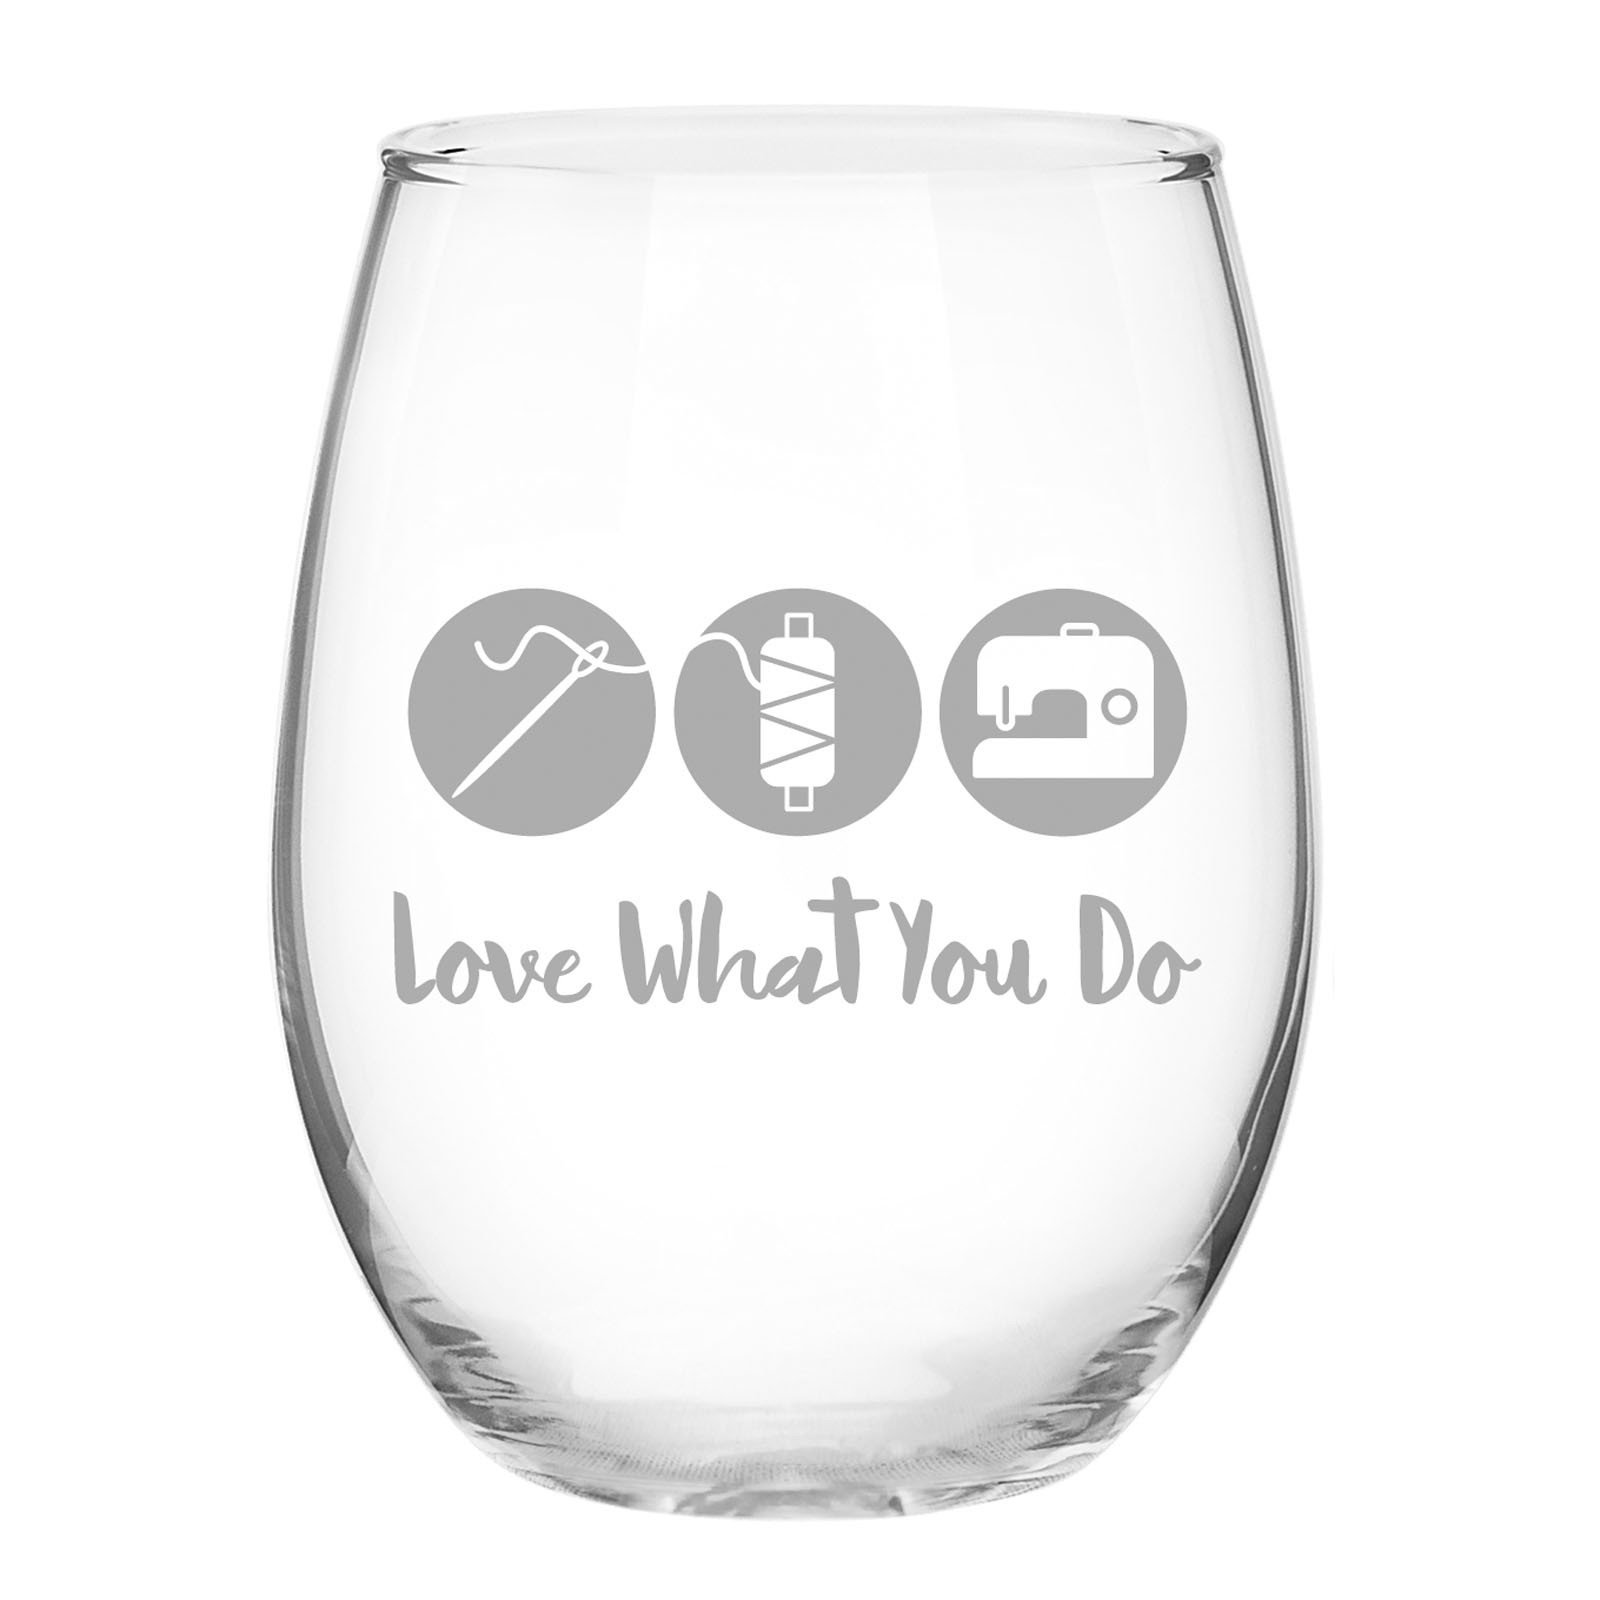 Quilt Happy Love What You Do Stemless Wine Glass